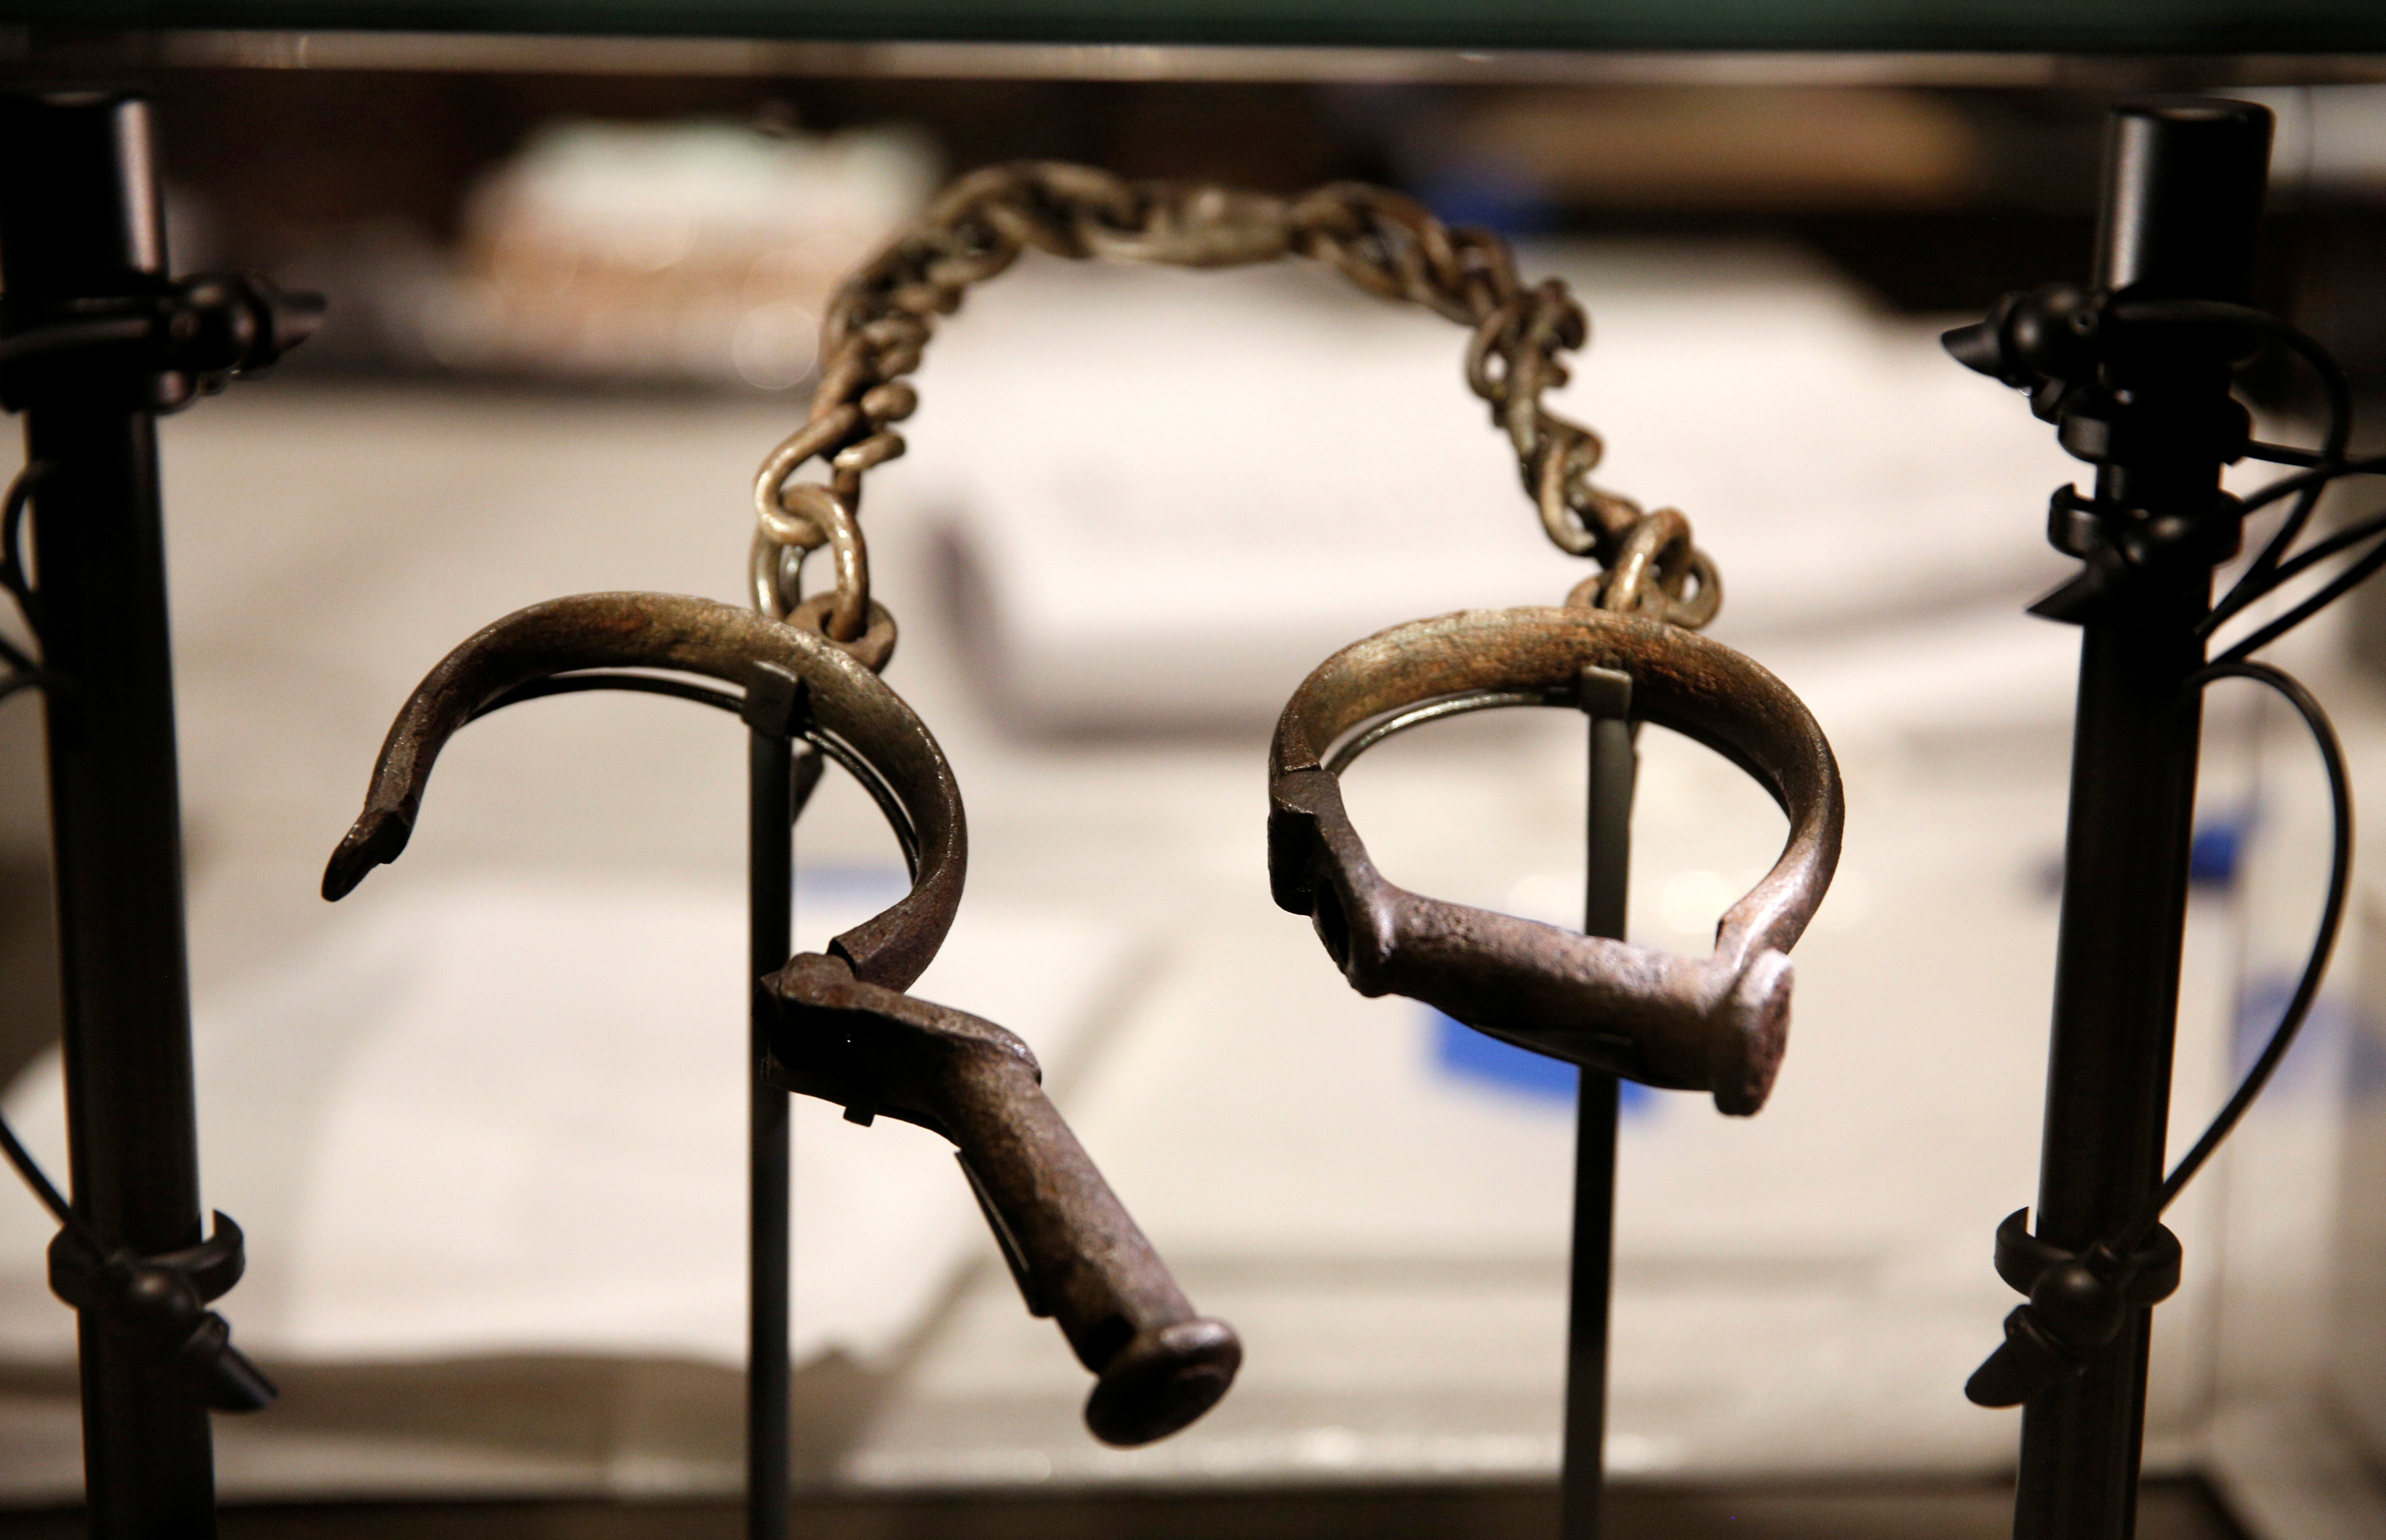 Slave shackles are seen in a display case during a media preview at the National Museum of African American History and Culture on the National Mall in Washington September 14, 2016. The museum will open to the public on September 24. REUTERS/Kevin Lamarque - D1BEUBHOEXAA